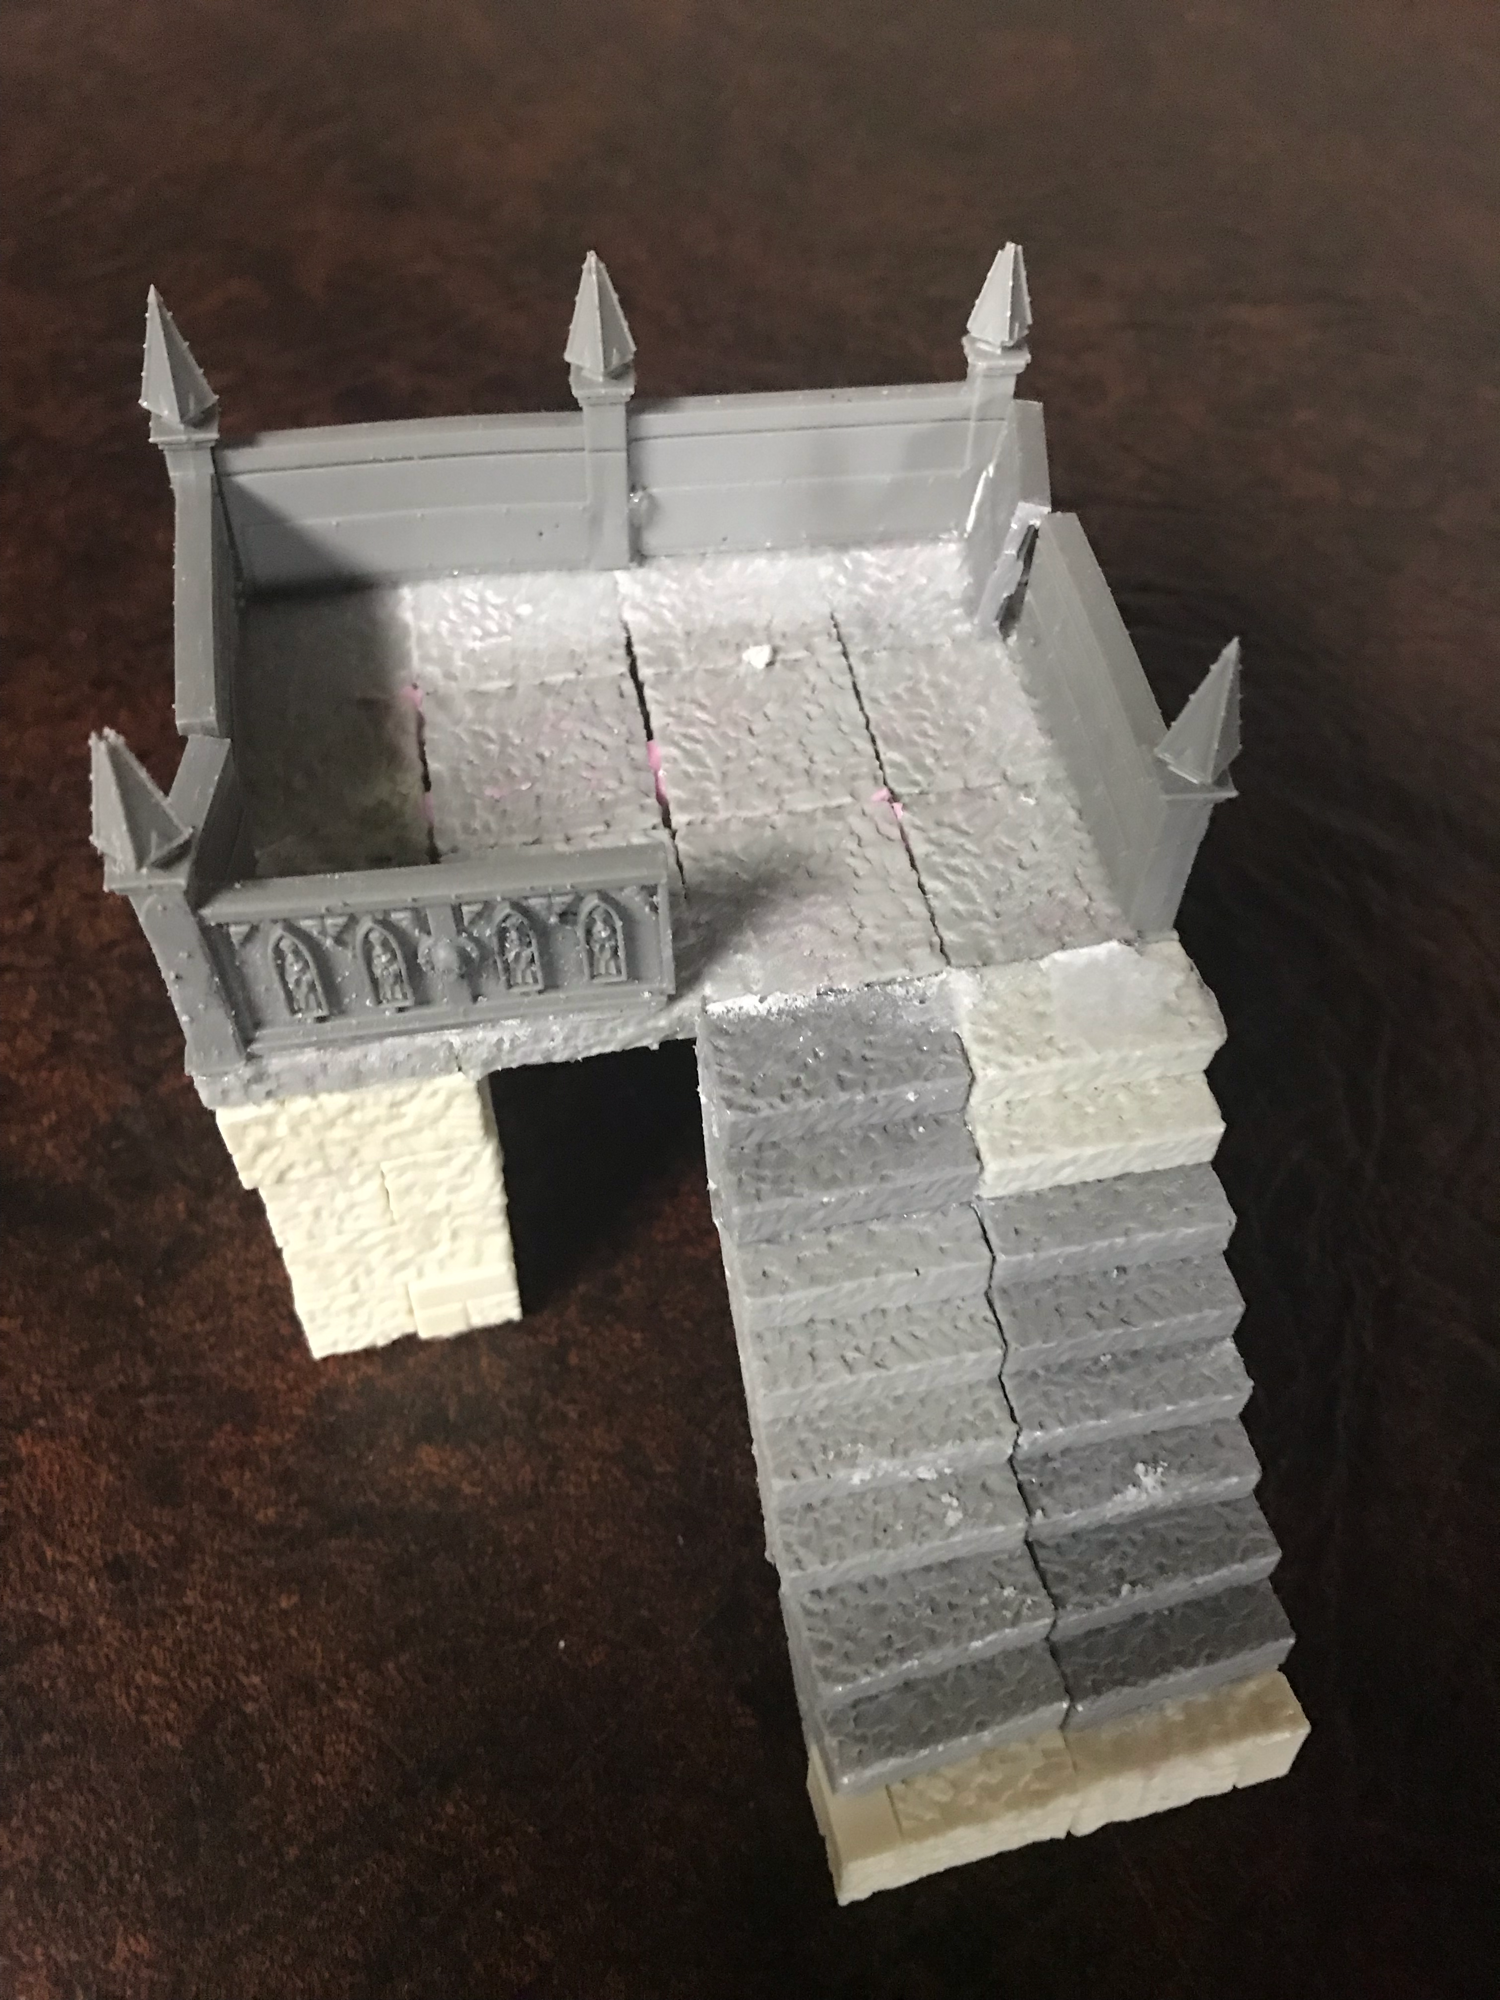 My current terrain project